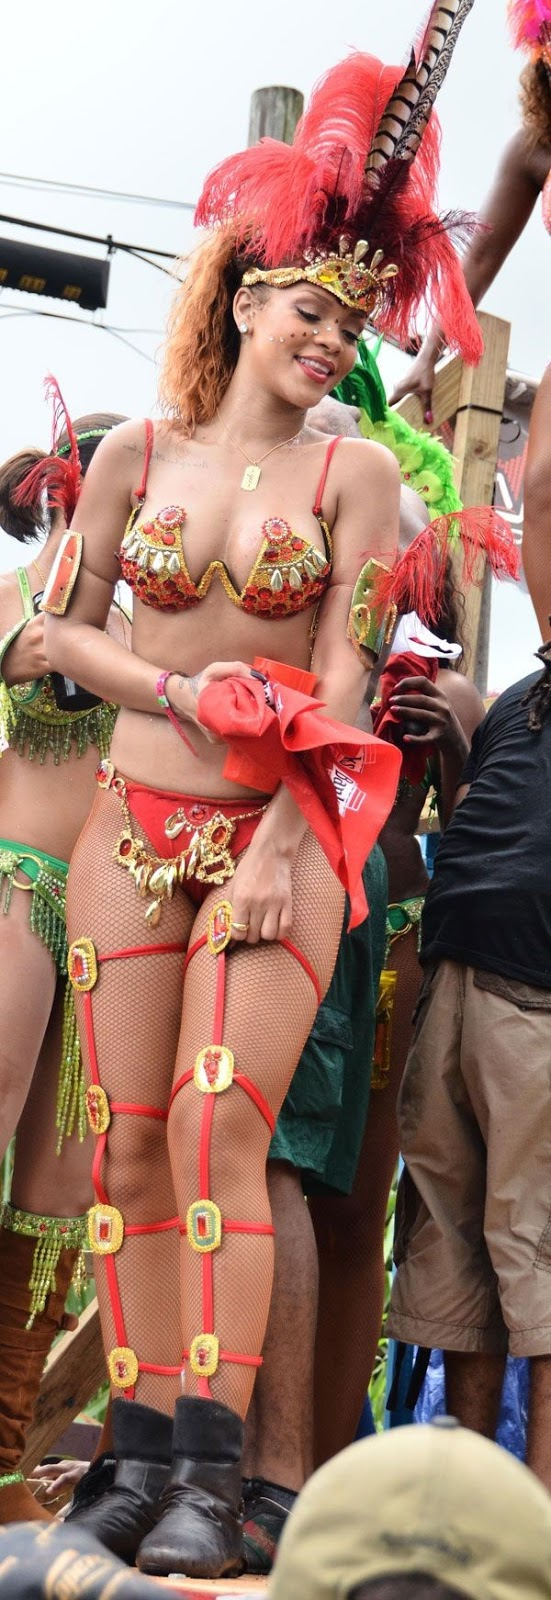 So what Rihanna had on a revealing outfit for The Kadooment Day Parade. Thats part of the whole spirit and culture. She's in her home country with her peoples being who she is and enjoying herself…